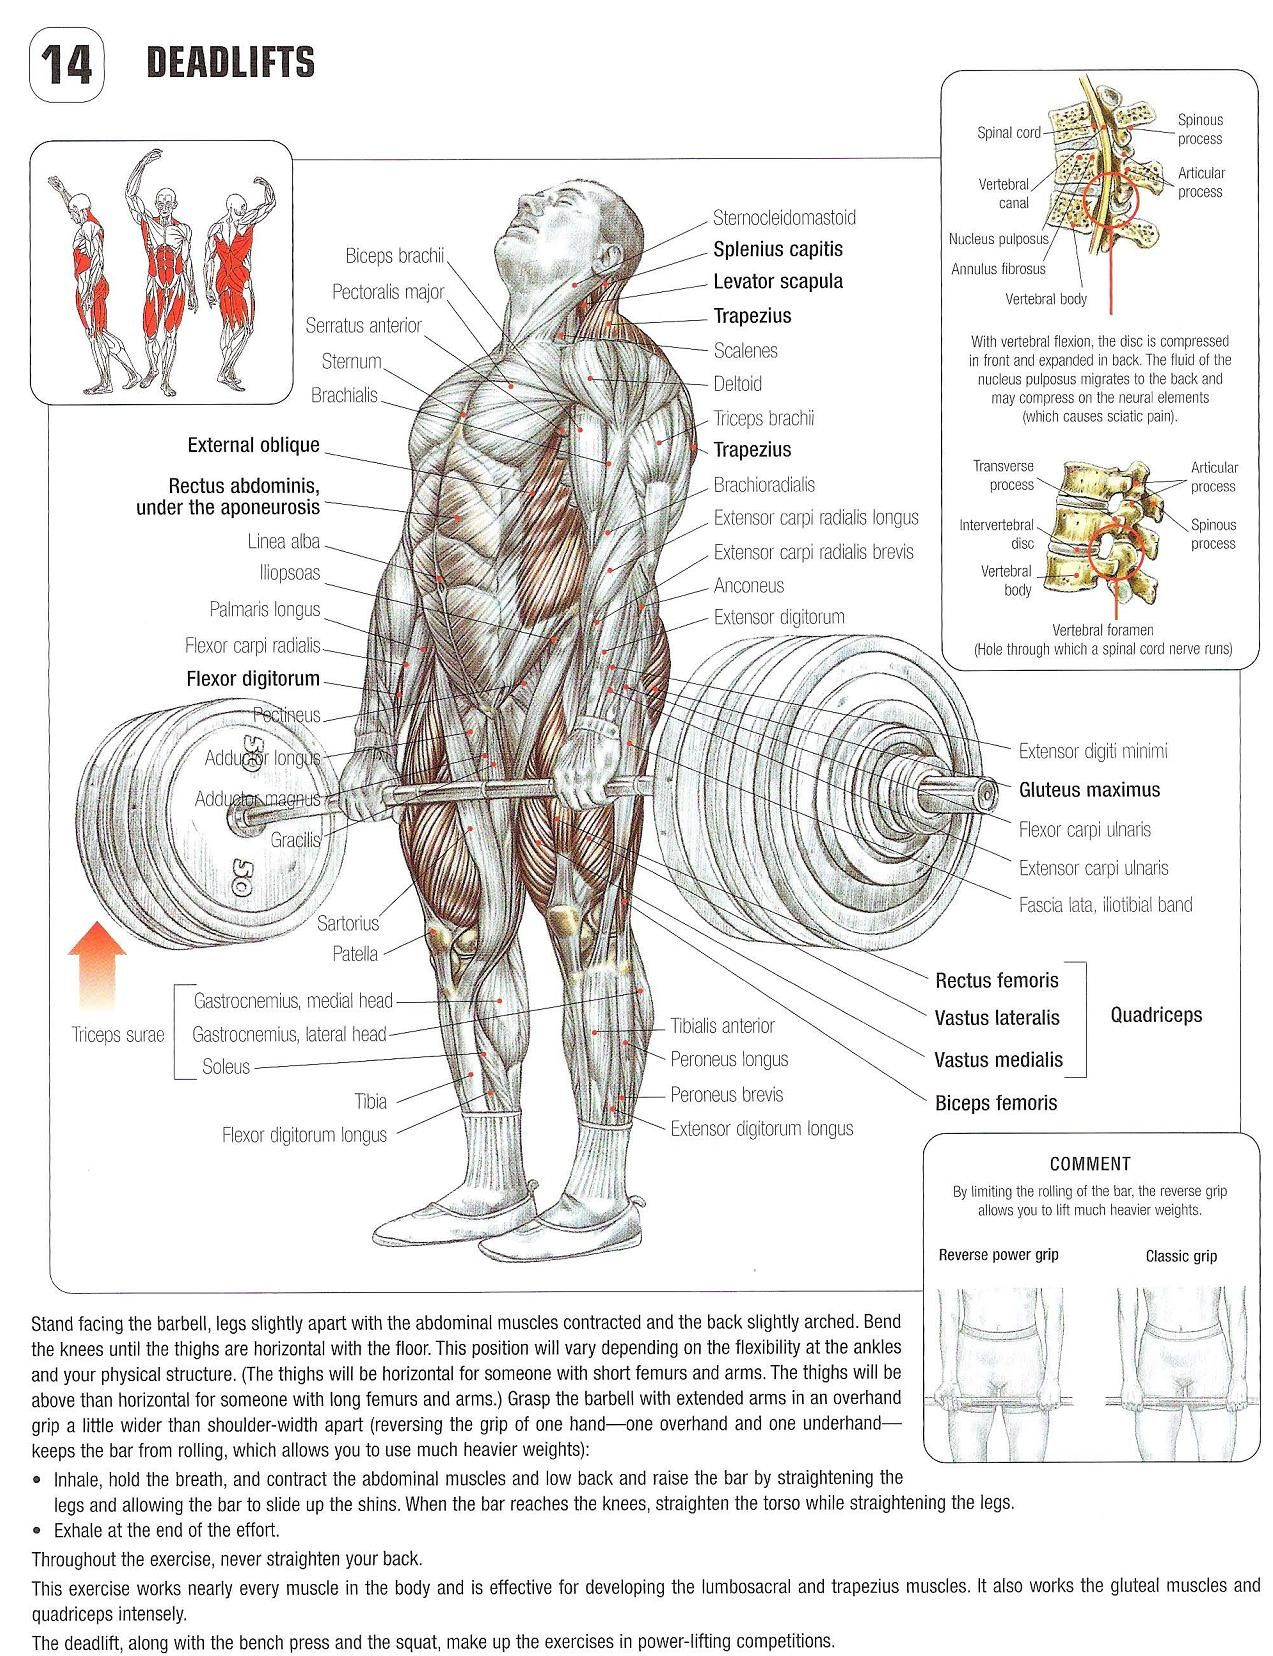 Deadlifts. Join our community at https://www.facebook.com ...